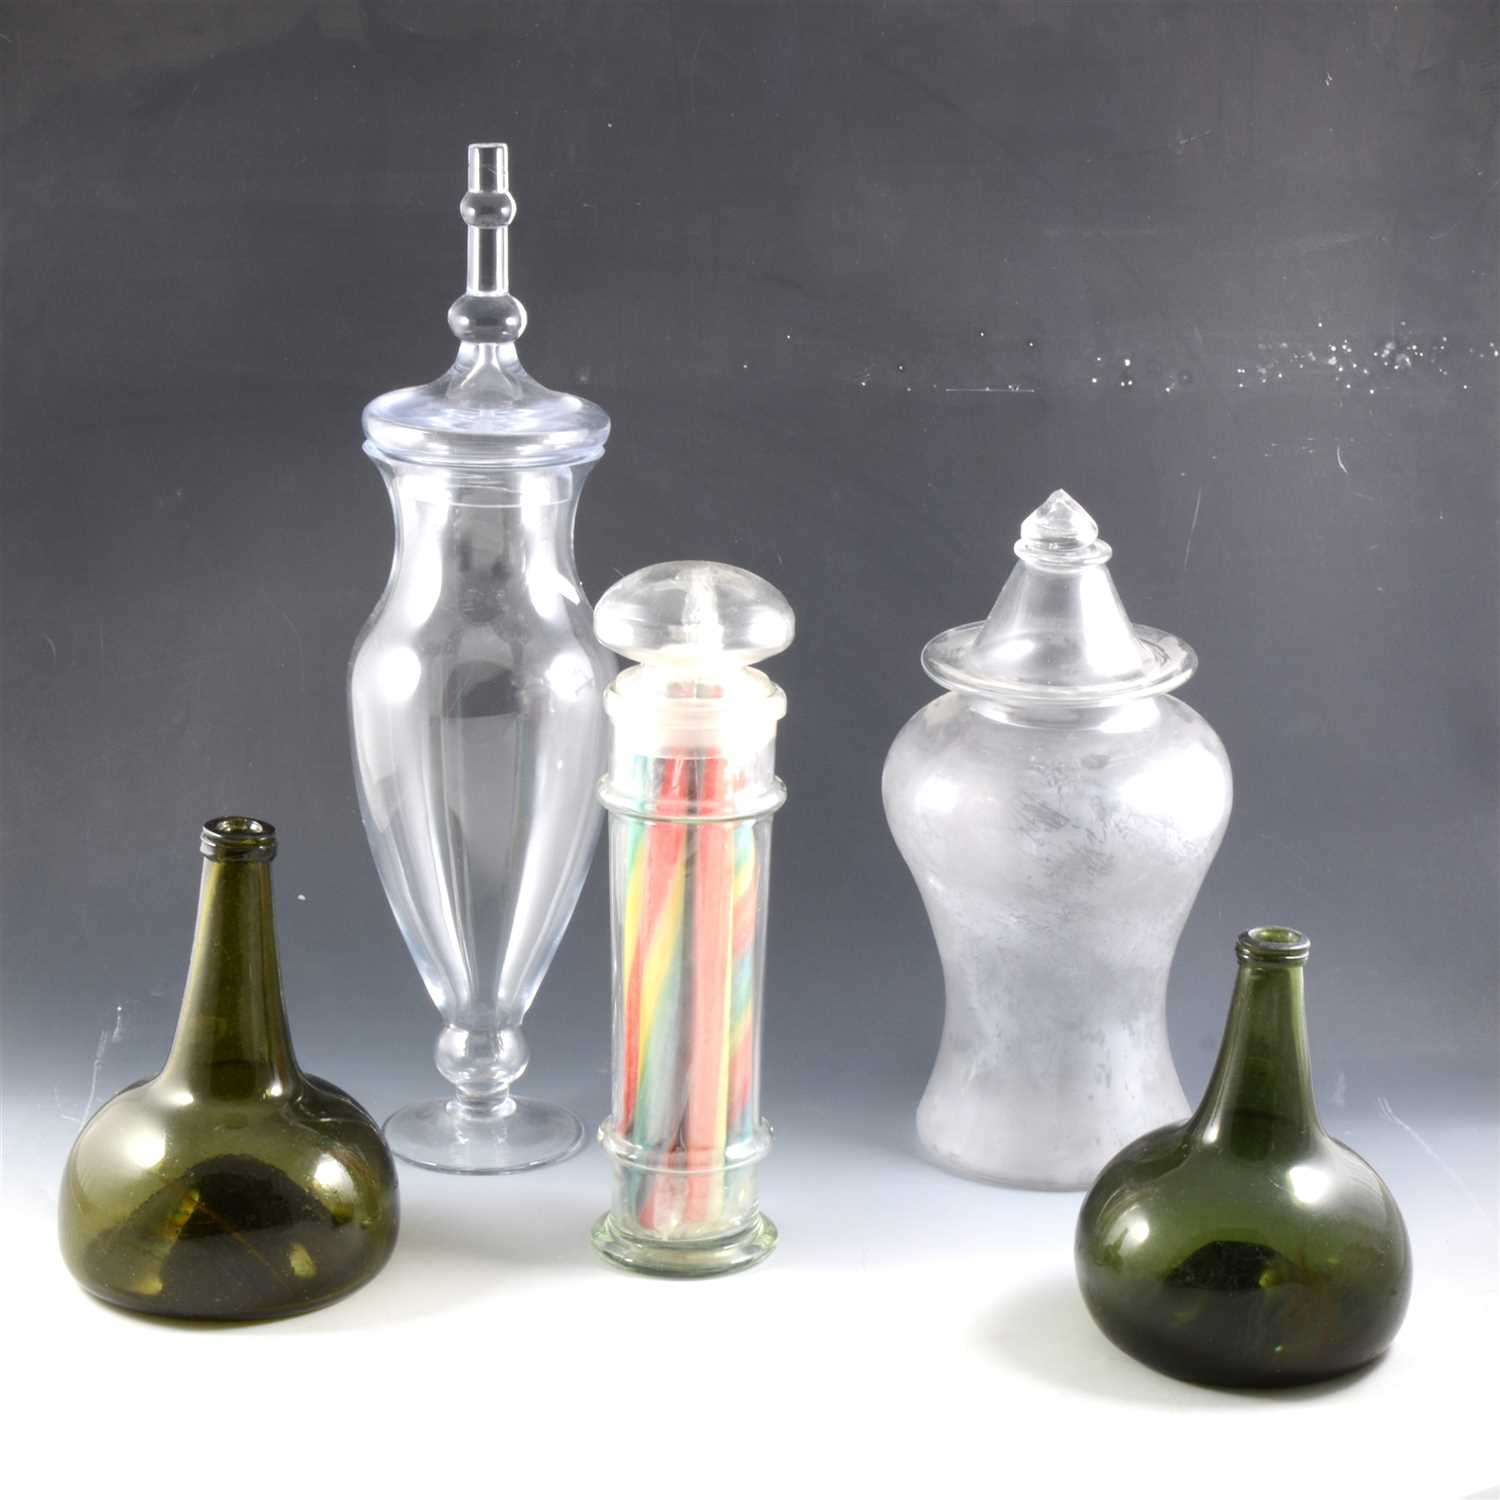 Lot 46-Two olive green glass onion-shape decanters, and three glass jars